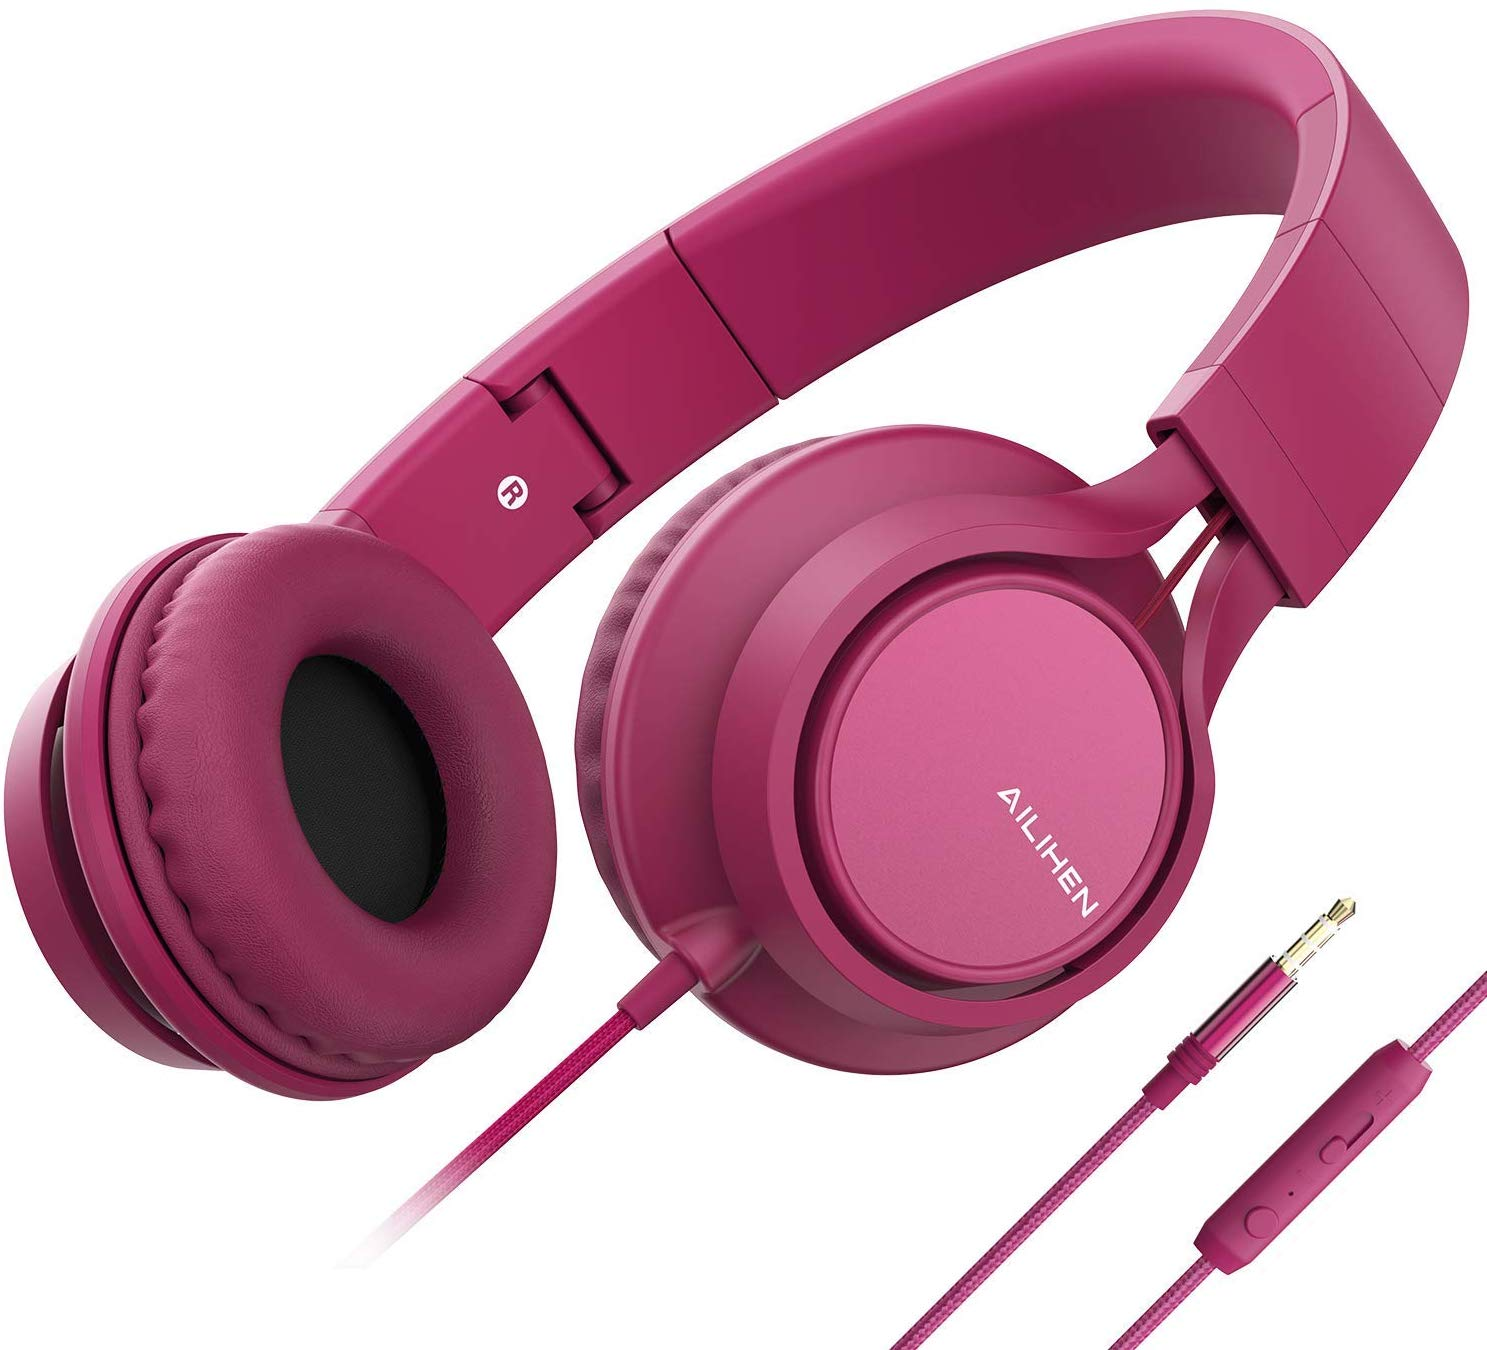 Headphones with Microphone and Volume Control - 21st Birthday Gifts For Daughter